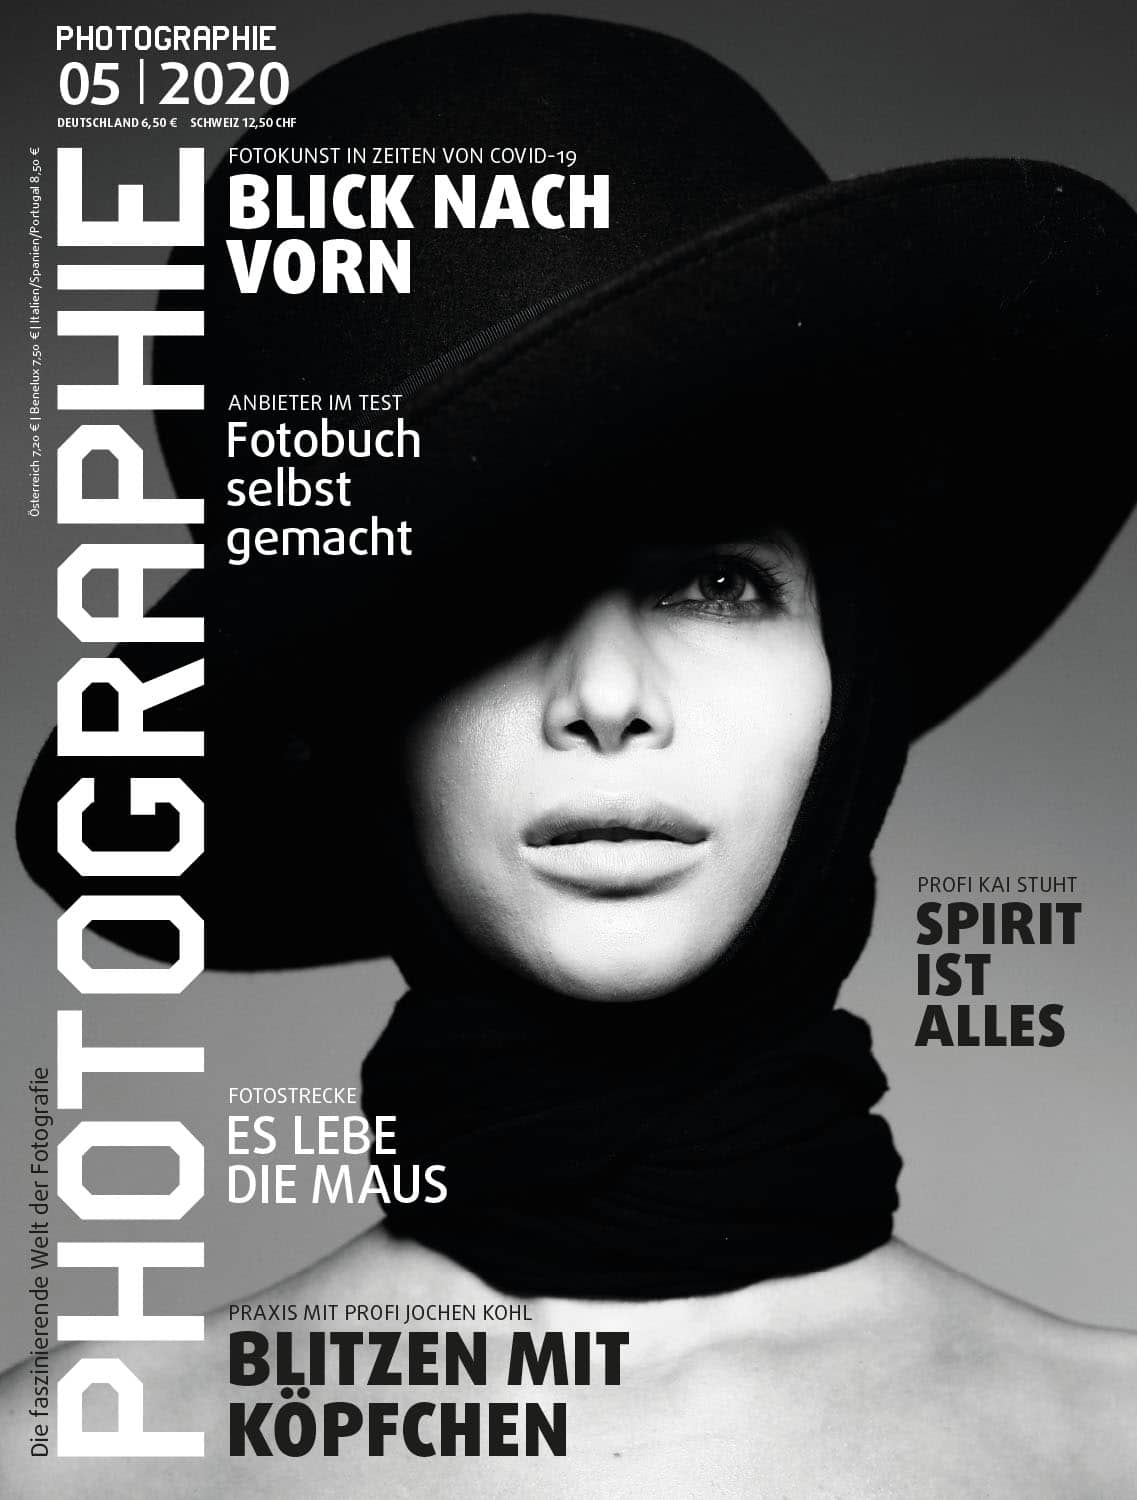 PHOTOGRAPHIE Digitales Magazin 5 2020 Cover